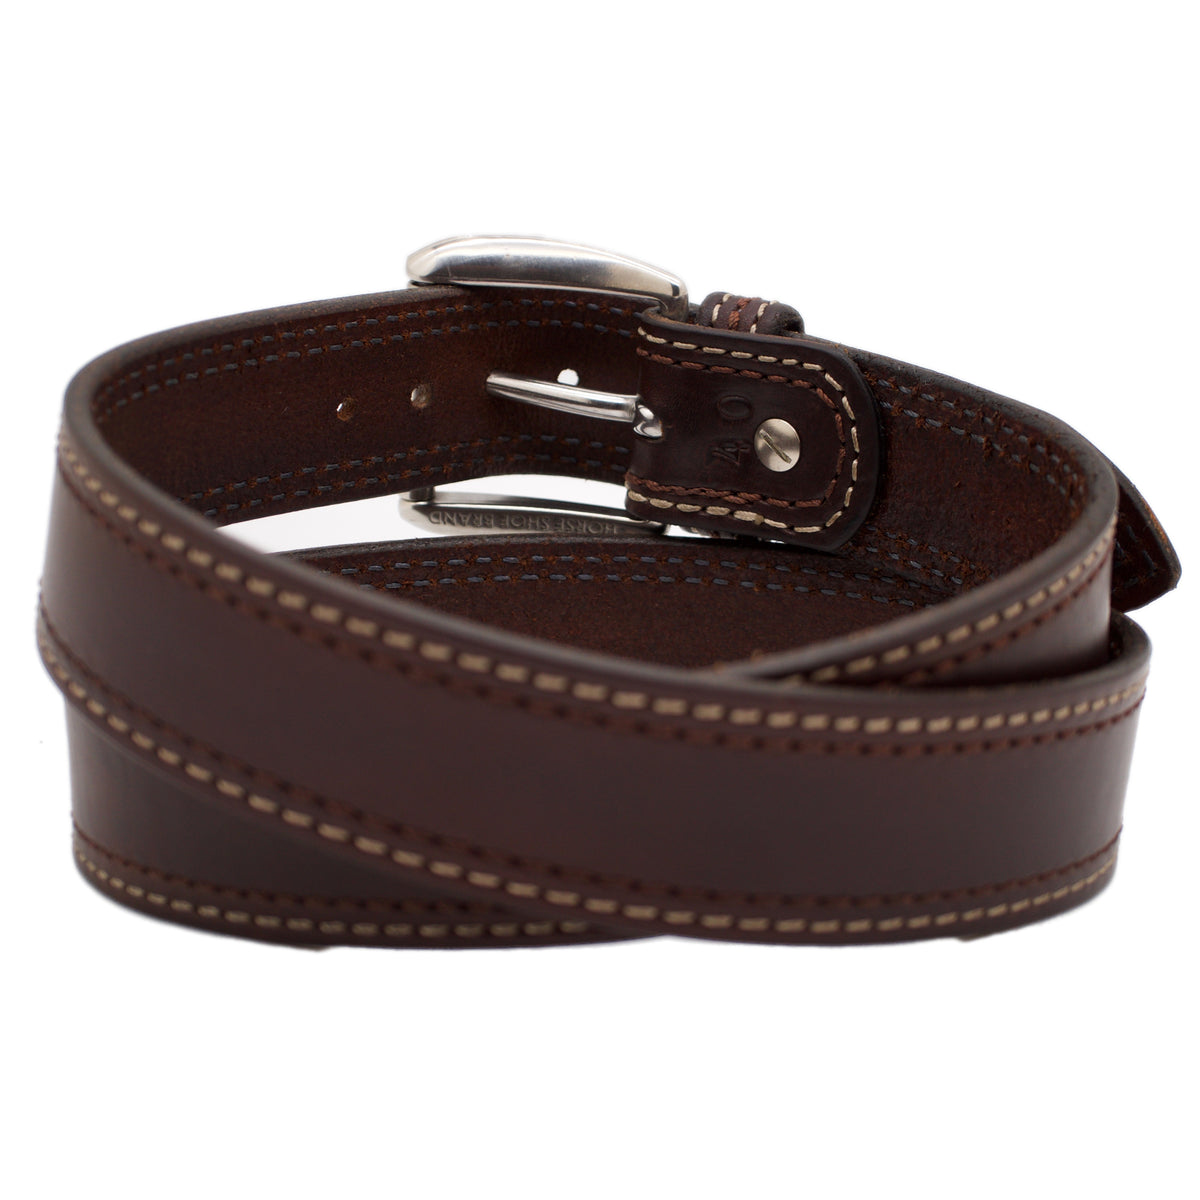 The LEXINGTON WIDE 1.75 Leather Belt